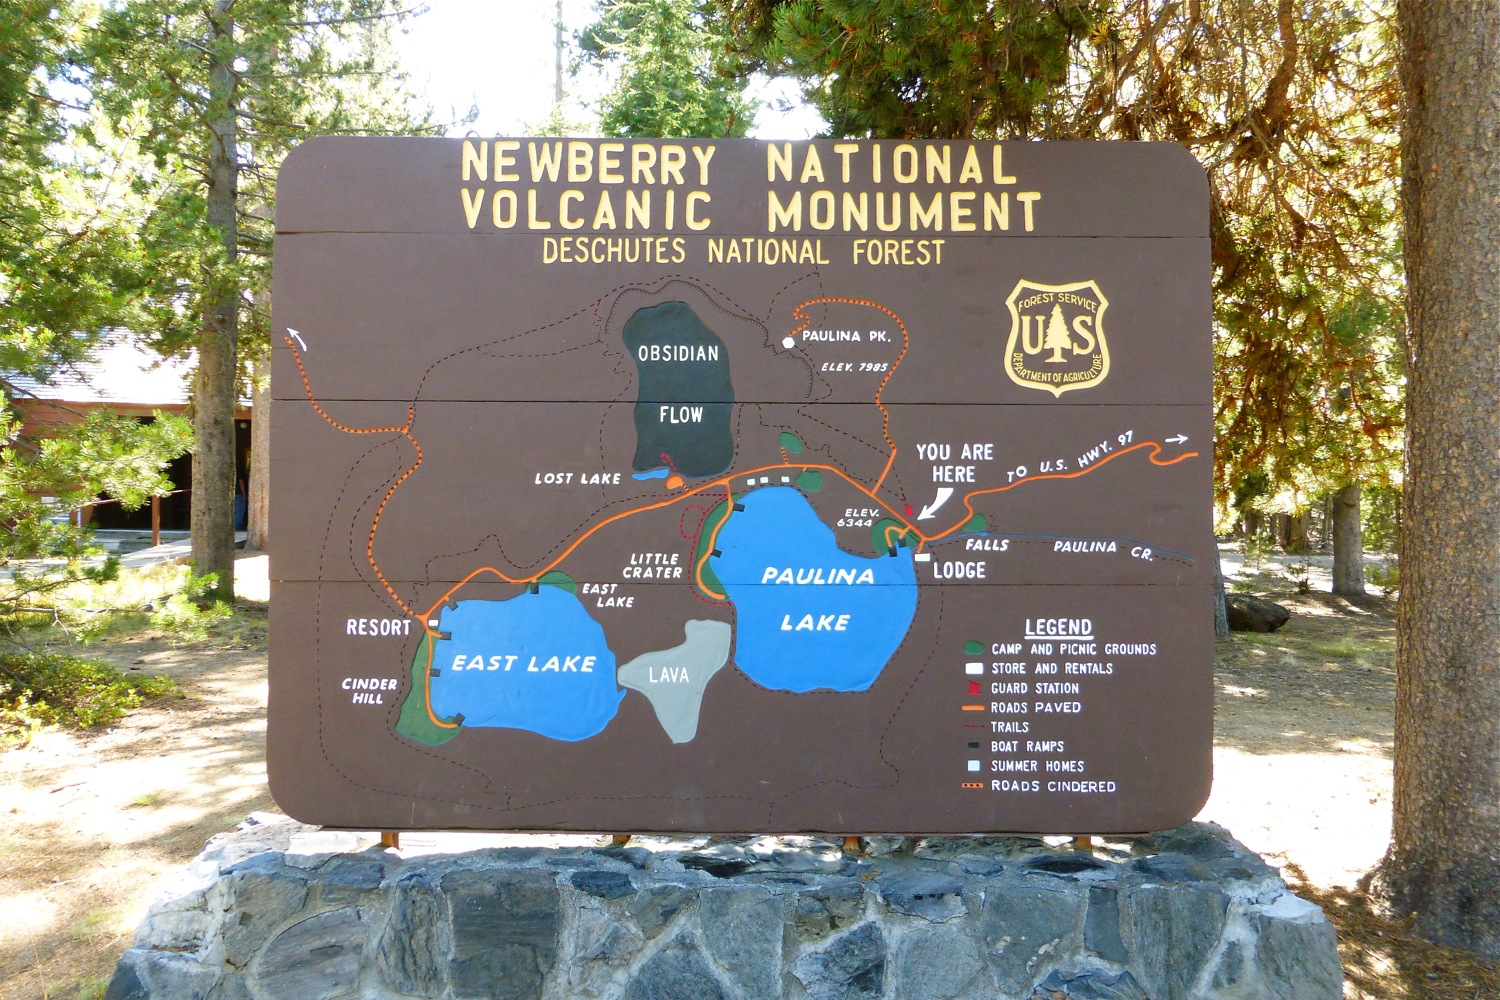 Map of Newberry National Volcanic Monument, Lakes of Newberry National Volcanic Monument, East Lake Newberry National Volcanic Monument, Paulina Lake Newberry National Volcanic Monument